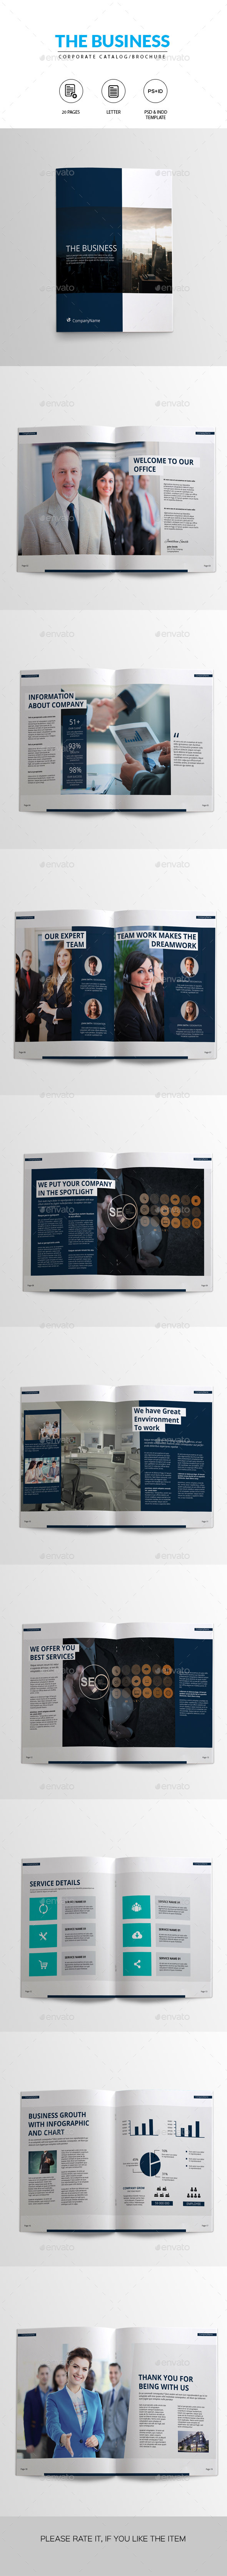 GraphicRiver Corporate Brochure Template 10855583